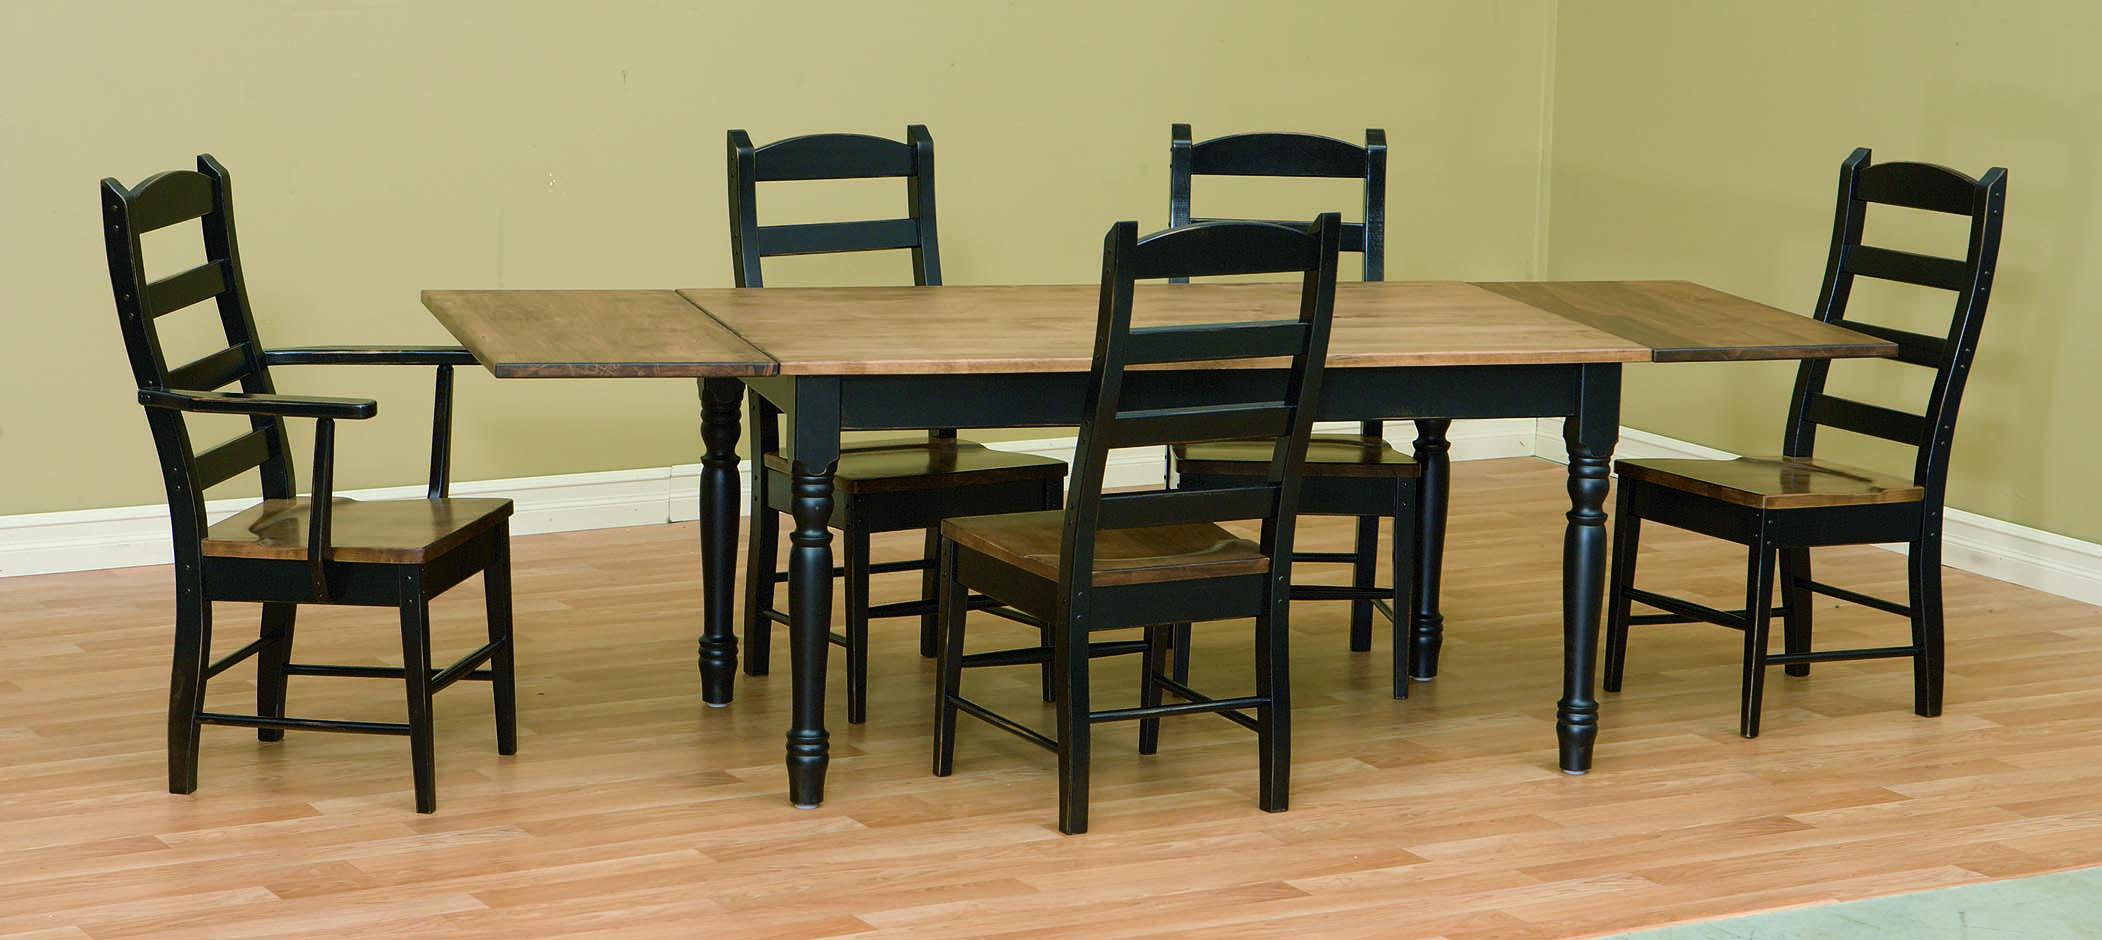 42 w company board table amish furniture connections amish